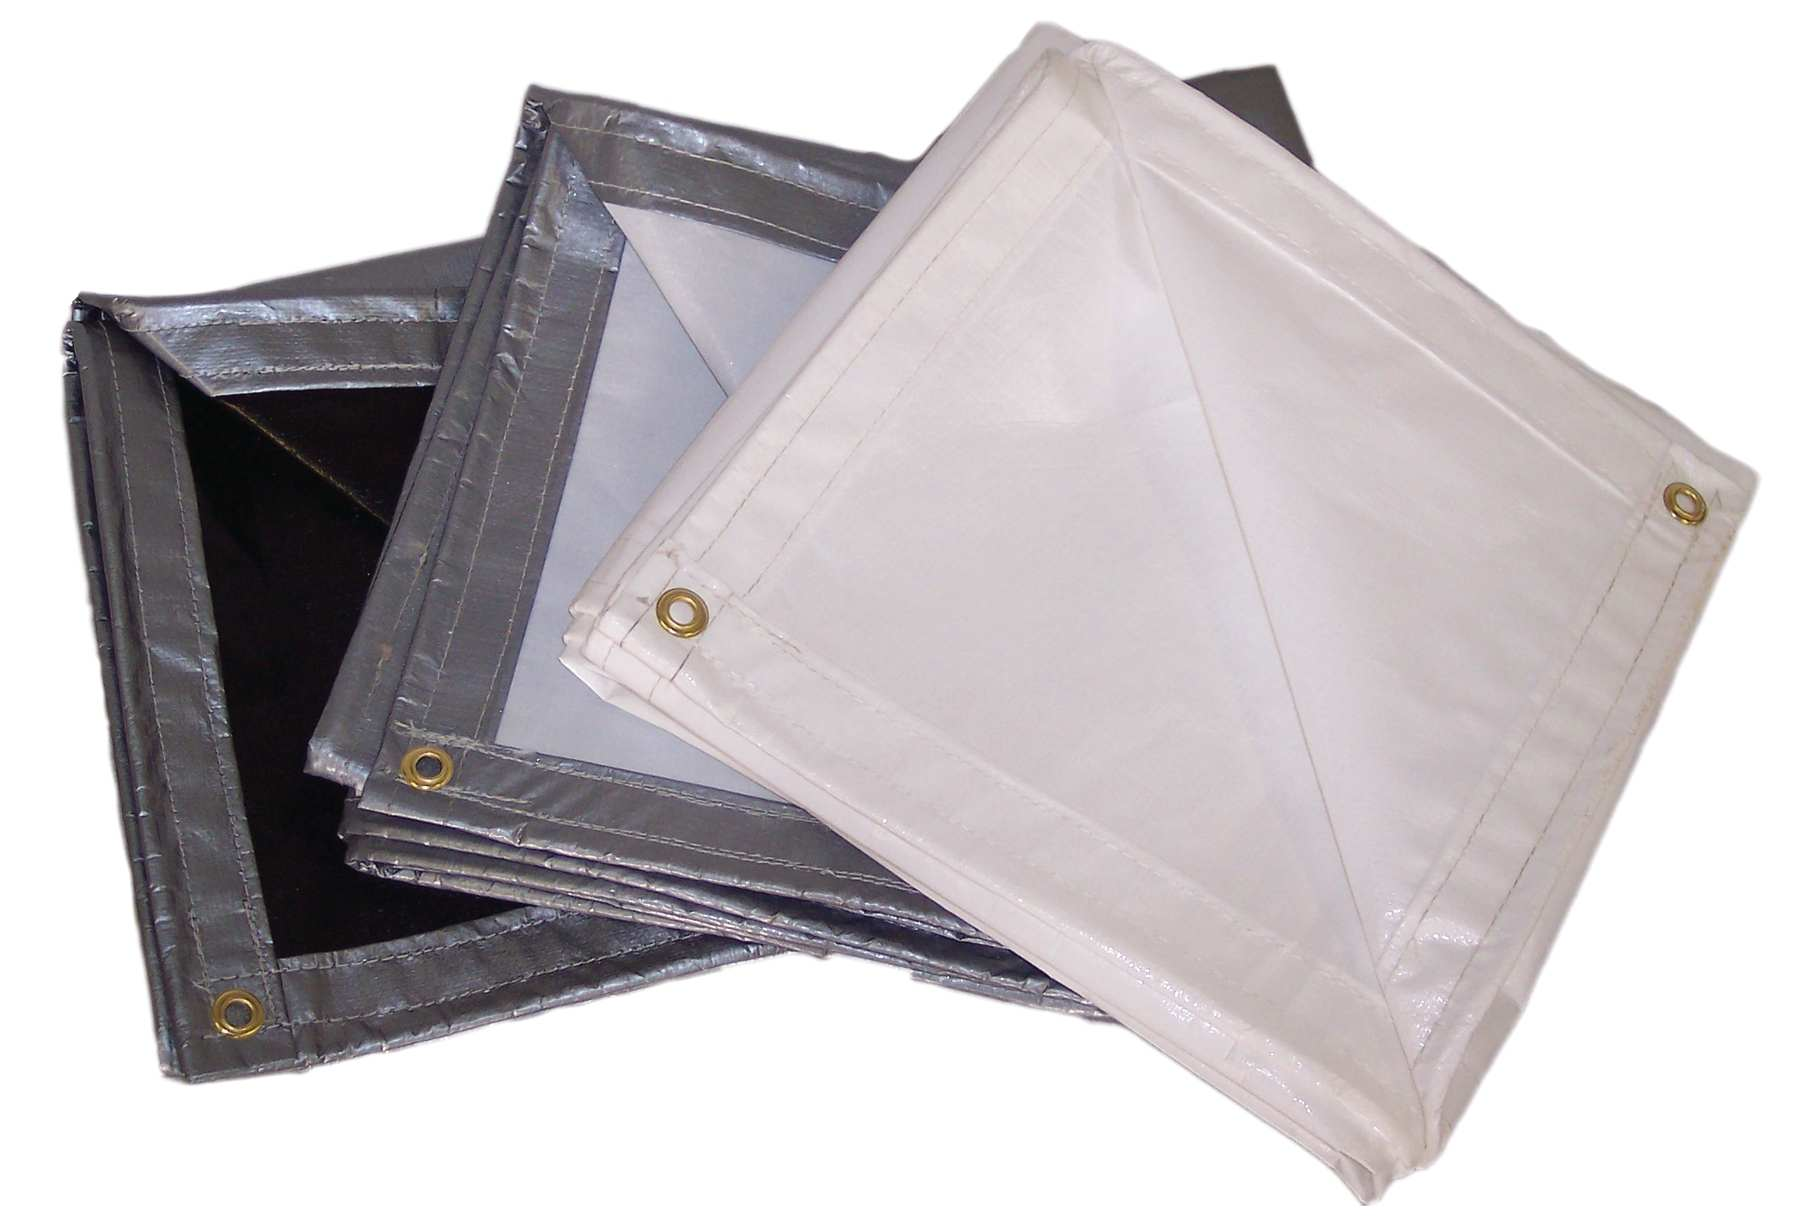 Heavy Duty Reinforced Polyethylene Tarps – 12 mil., 7 oz./sq. Yd.; Size (ft.) 20 x 30